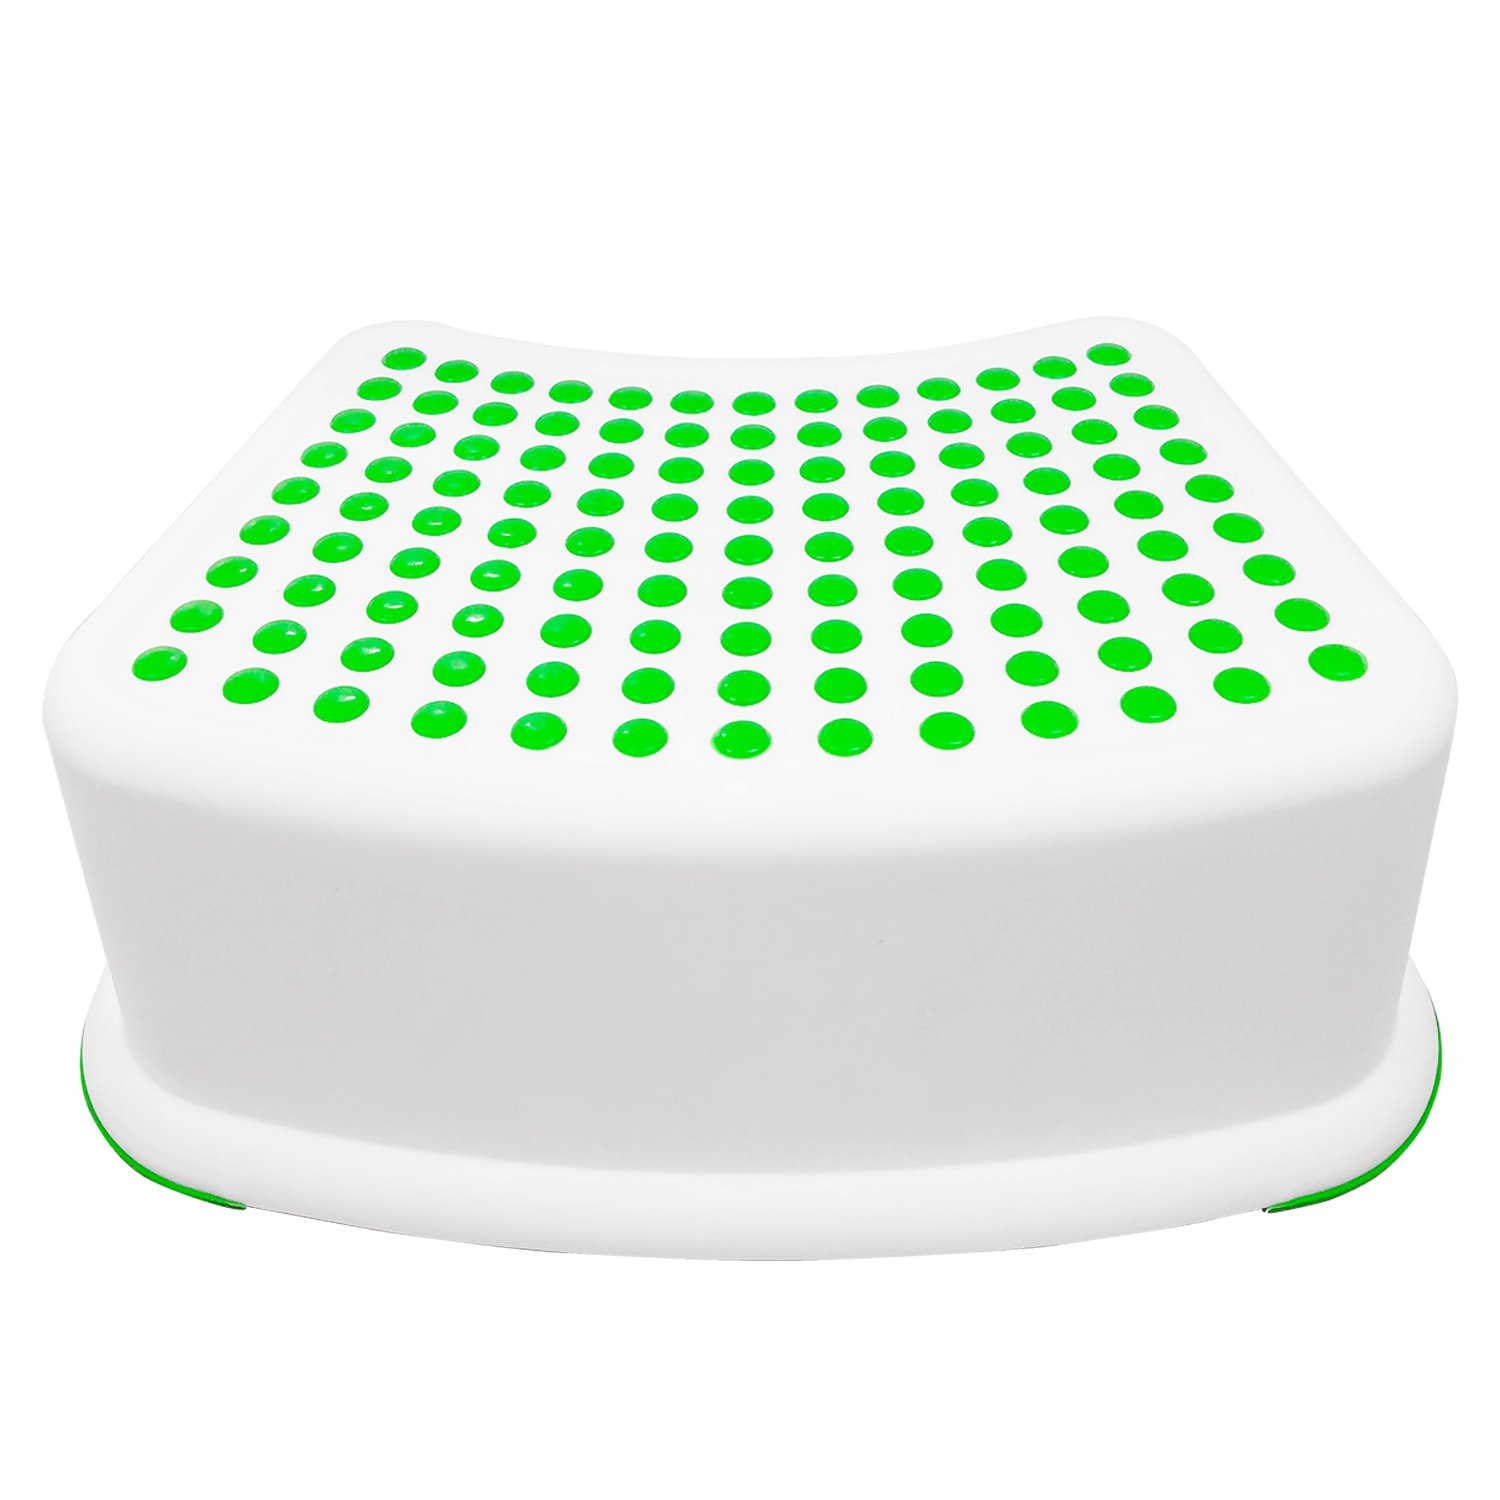 Kids Green Step Stool - Great For Potty Training, Bathroom, Bedroom, Toy Room, Kitchen, and Living Room. Perfect For Your House Tundras SYNCHKG103623